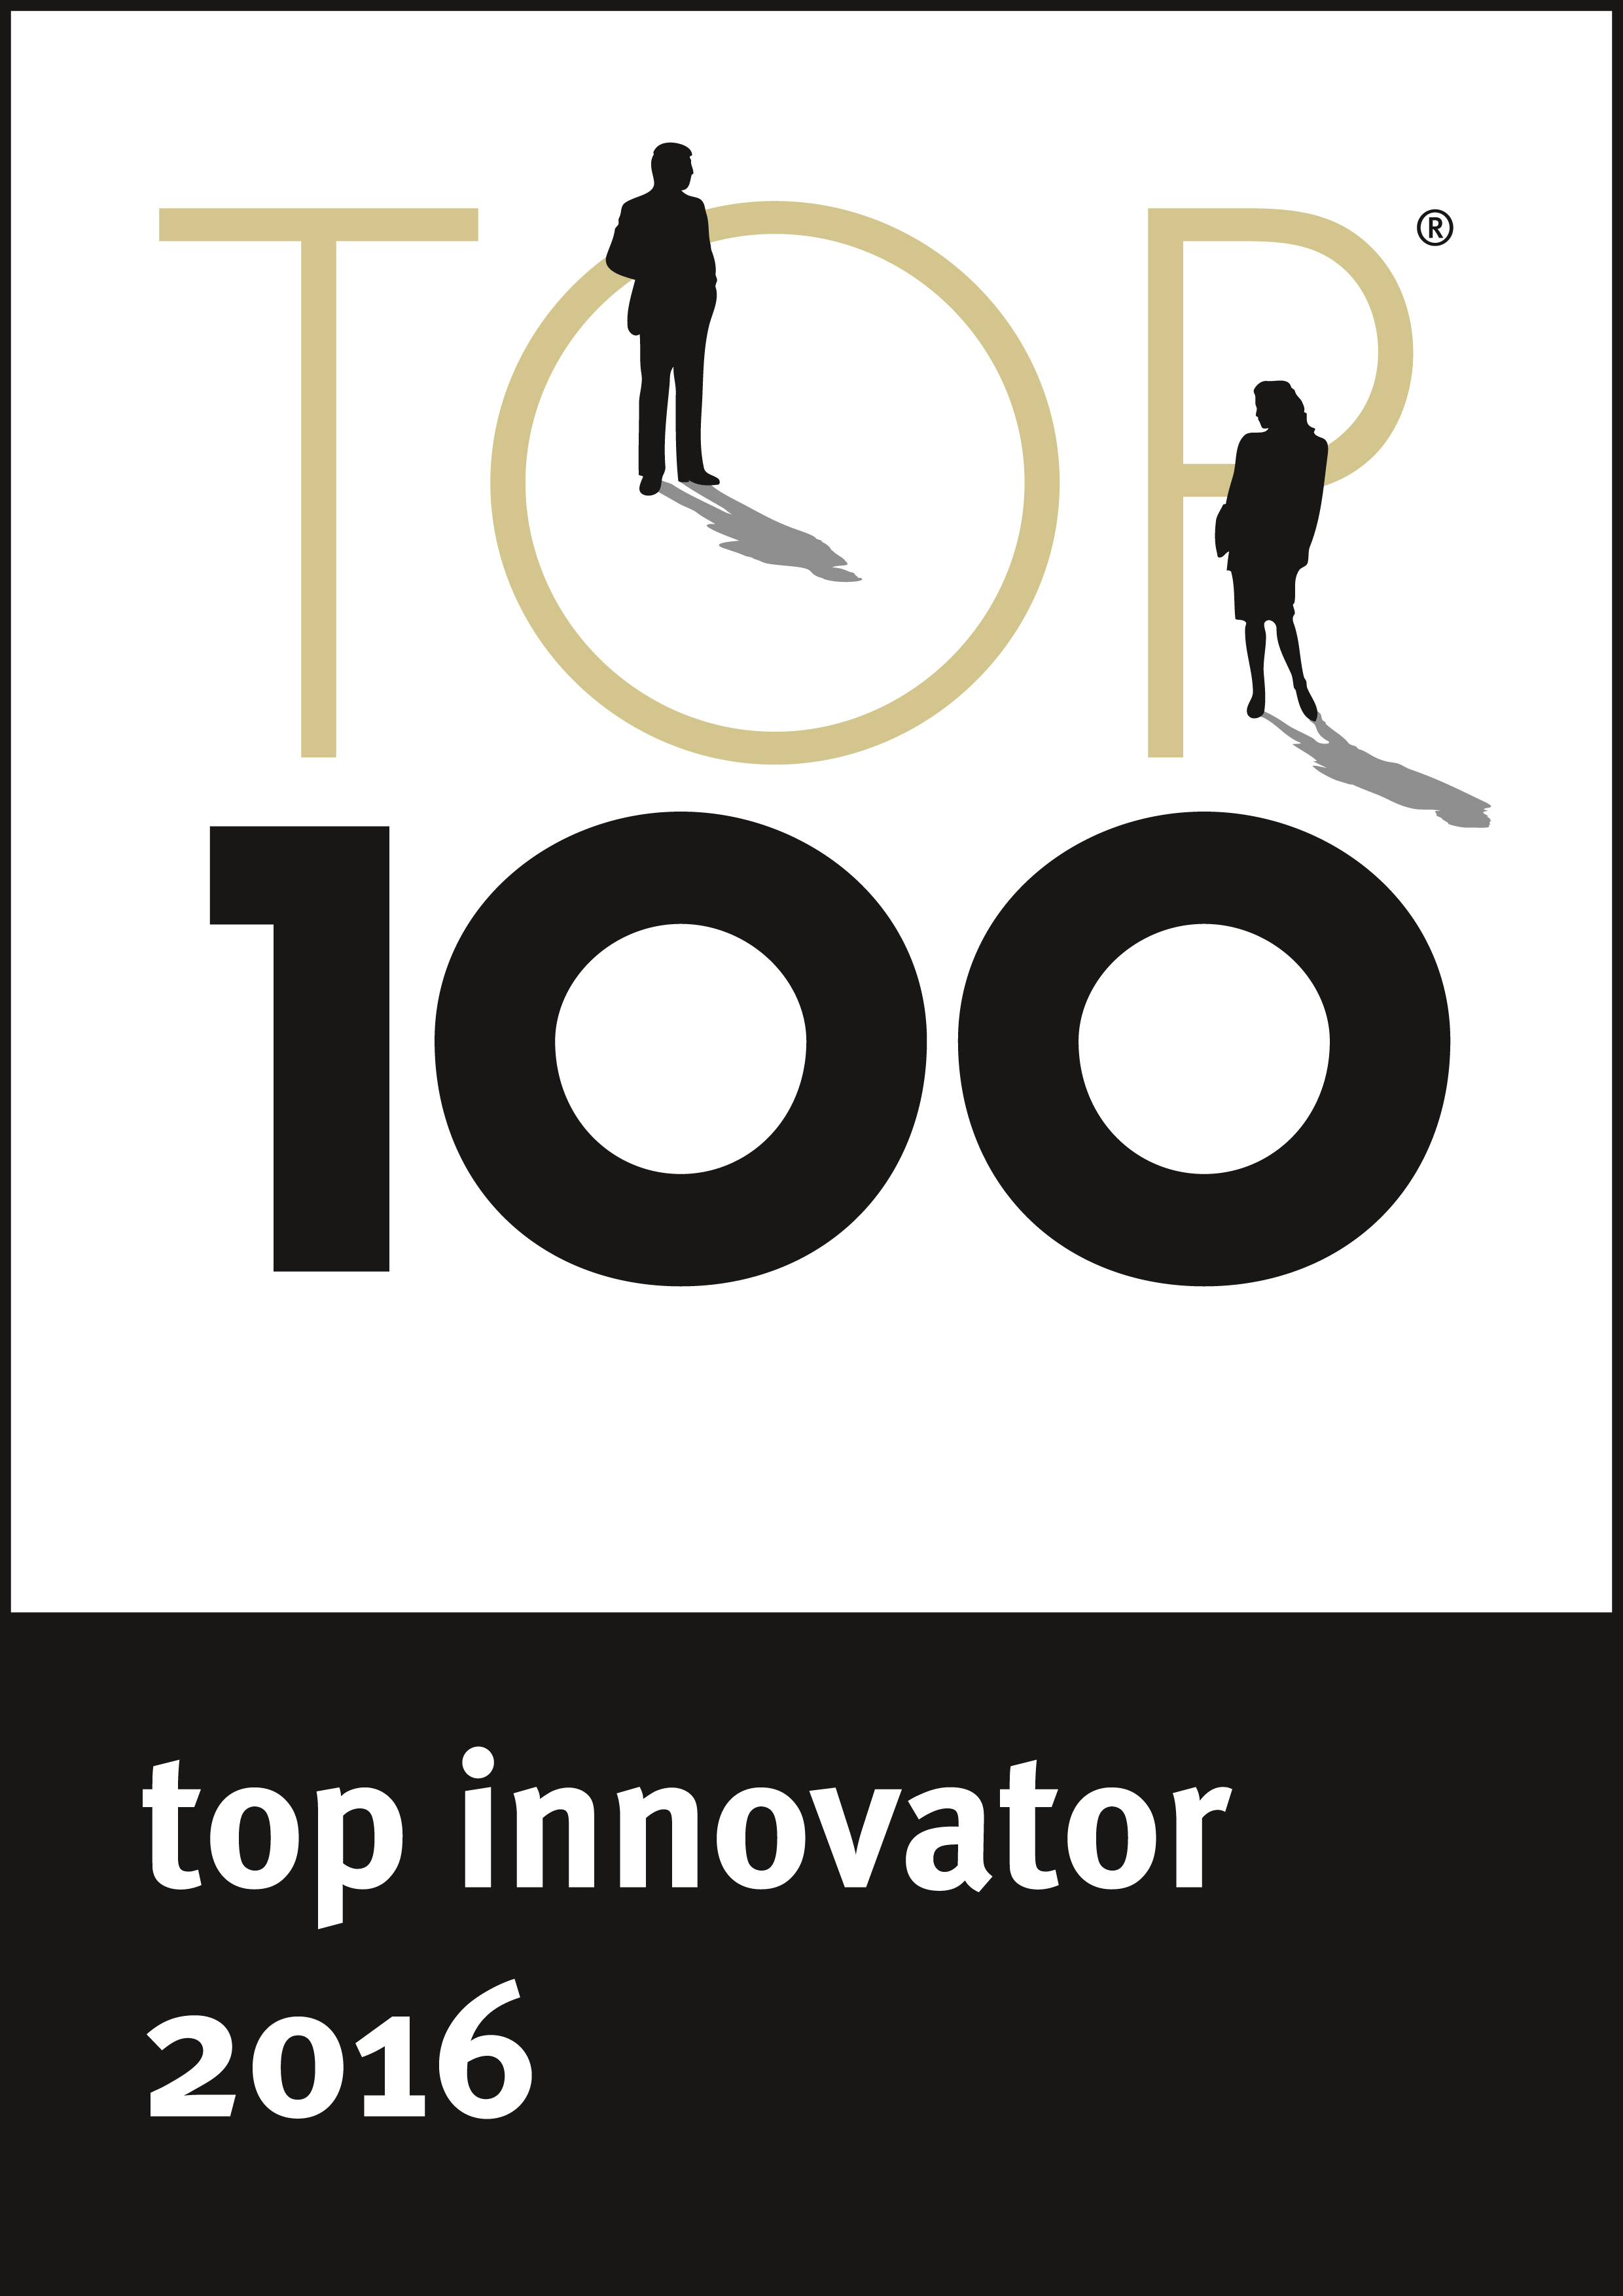 top 100 innovator 2016 award for humintech company